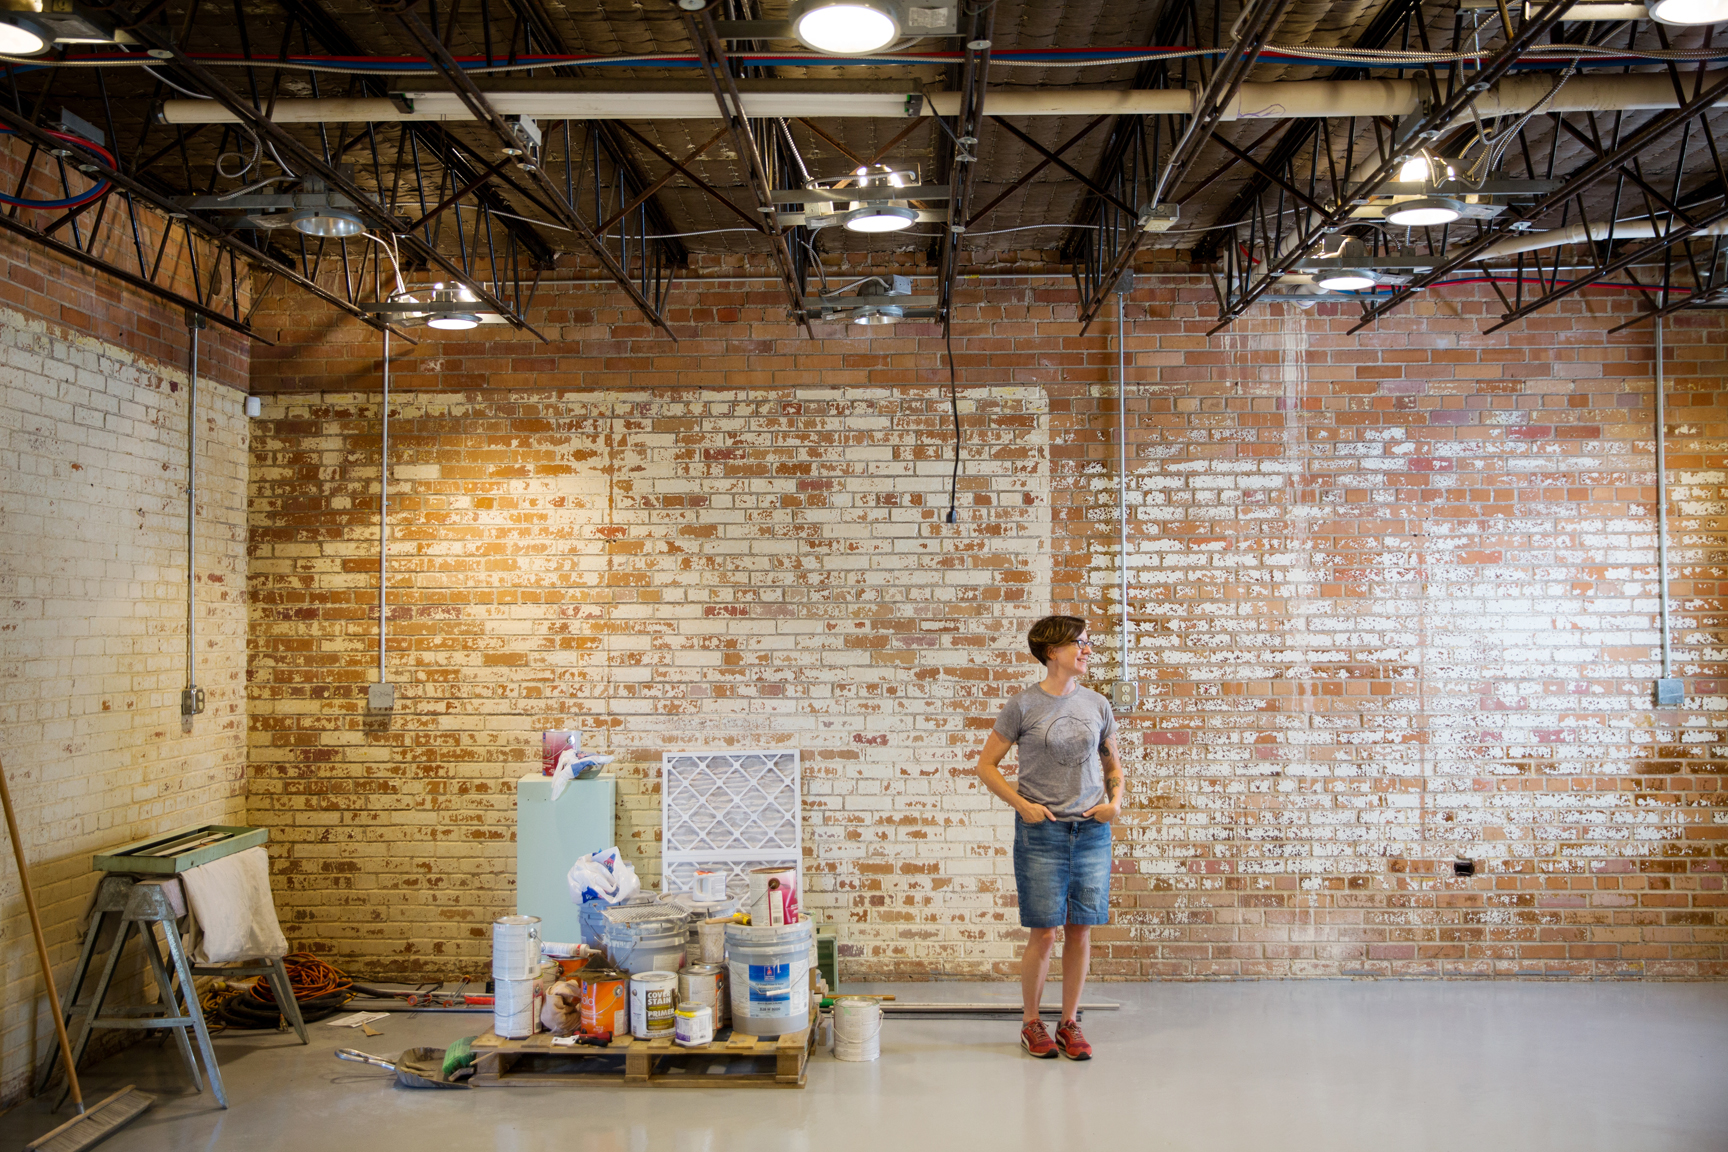 A veteran of Baton Rouge's maker community, Kathryn Hunter of Blackbird Letterpress is in the process of renovating and transforming an old building on Main Street into a workspace and home. Photo by Collin Richie.